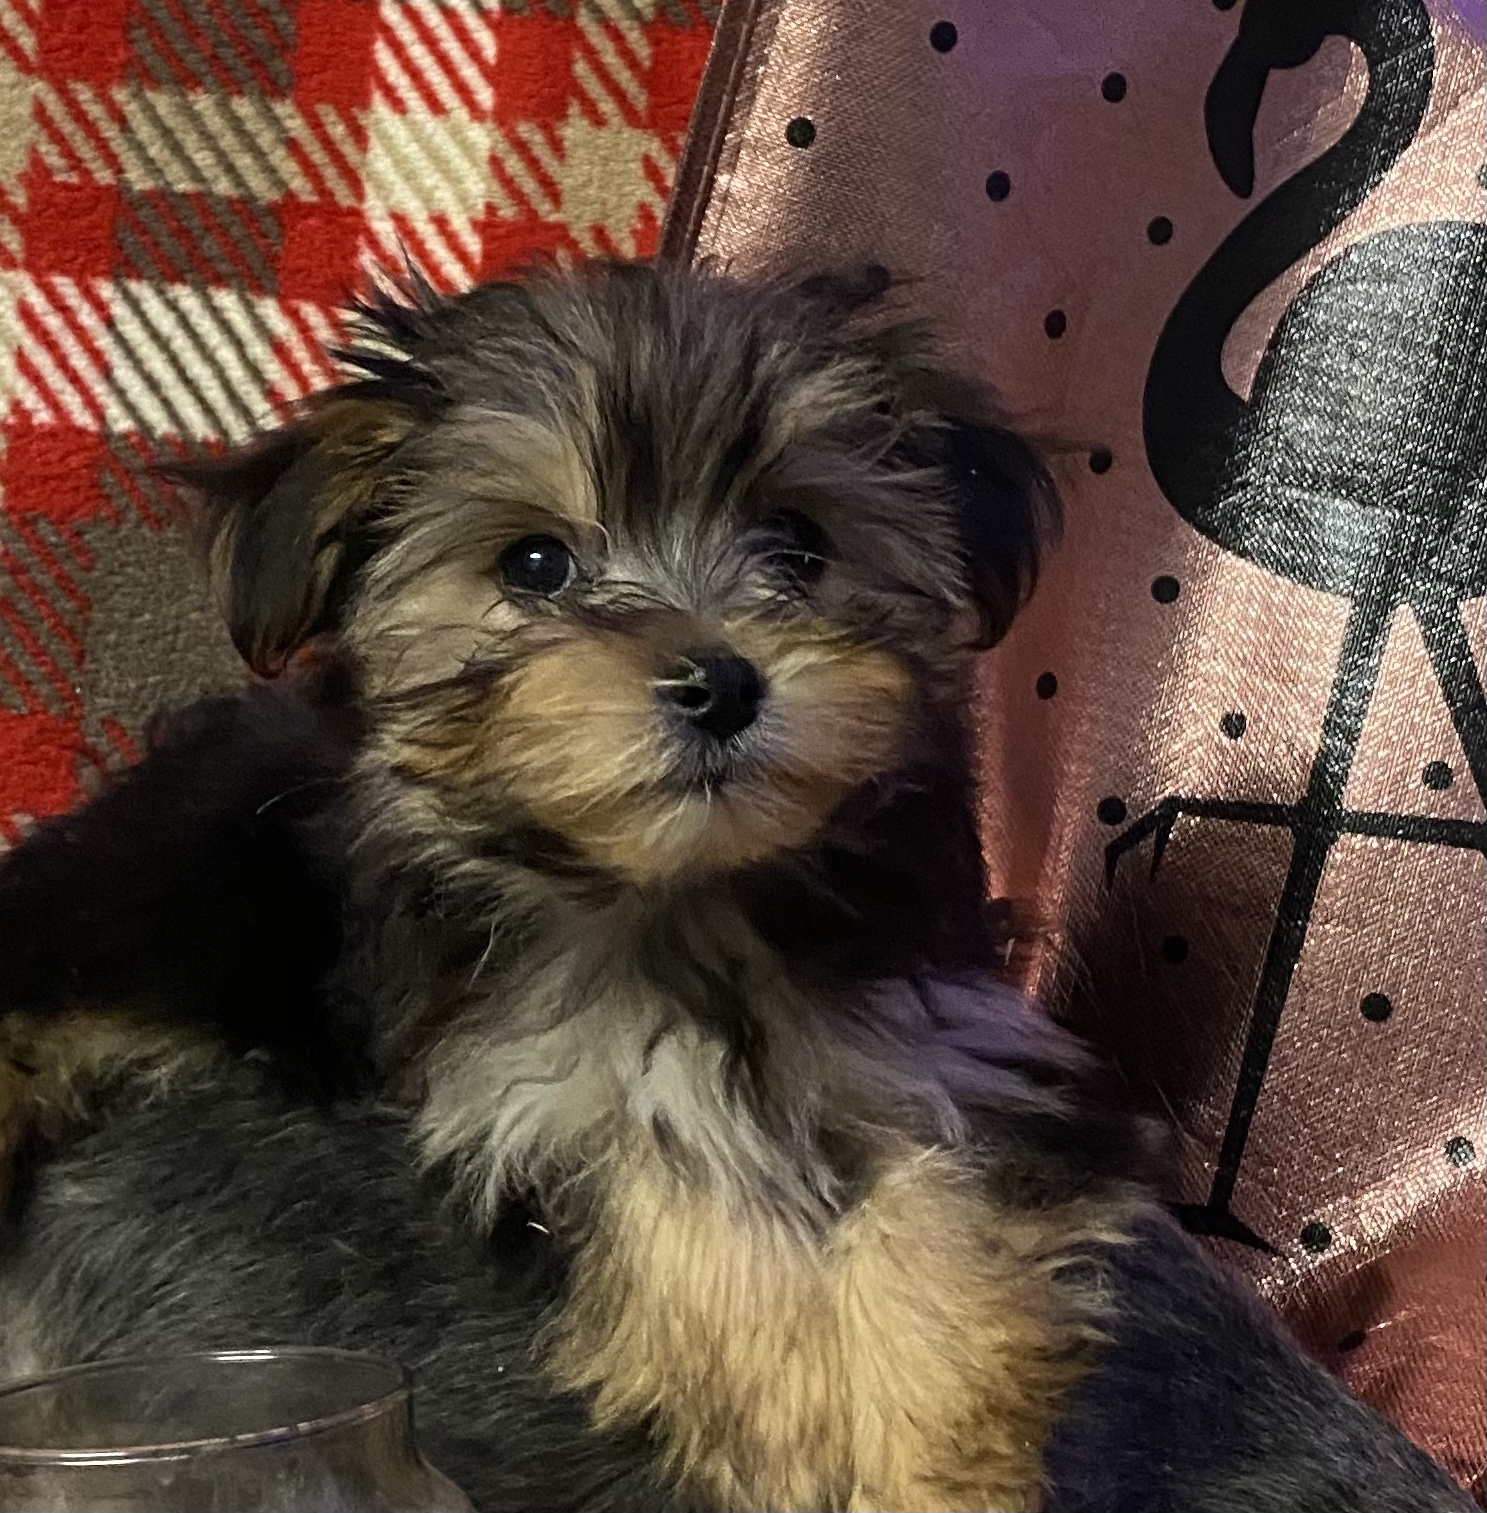 Morkie  - Dogs For Sale in Fermanagh  - Belfast Telegraph Classifieds